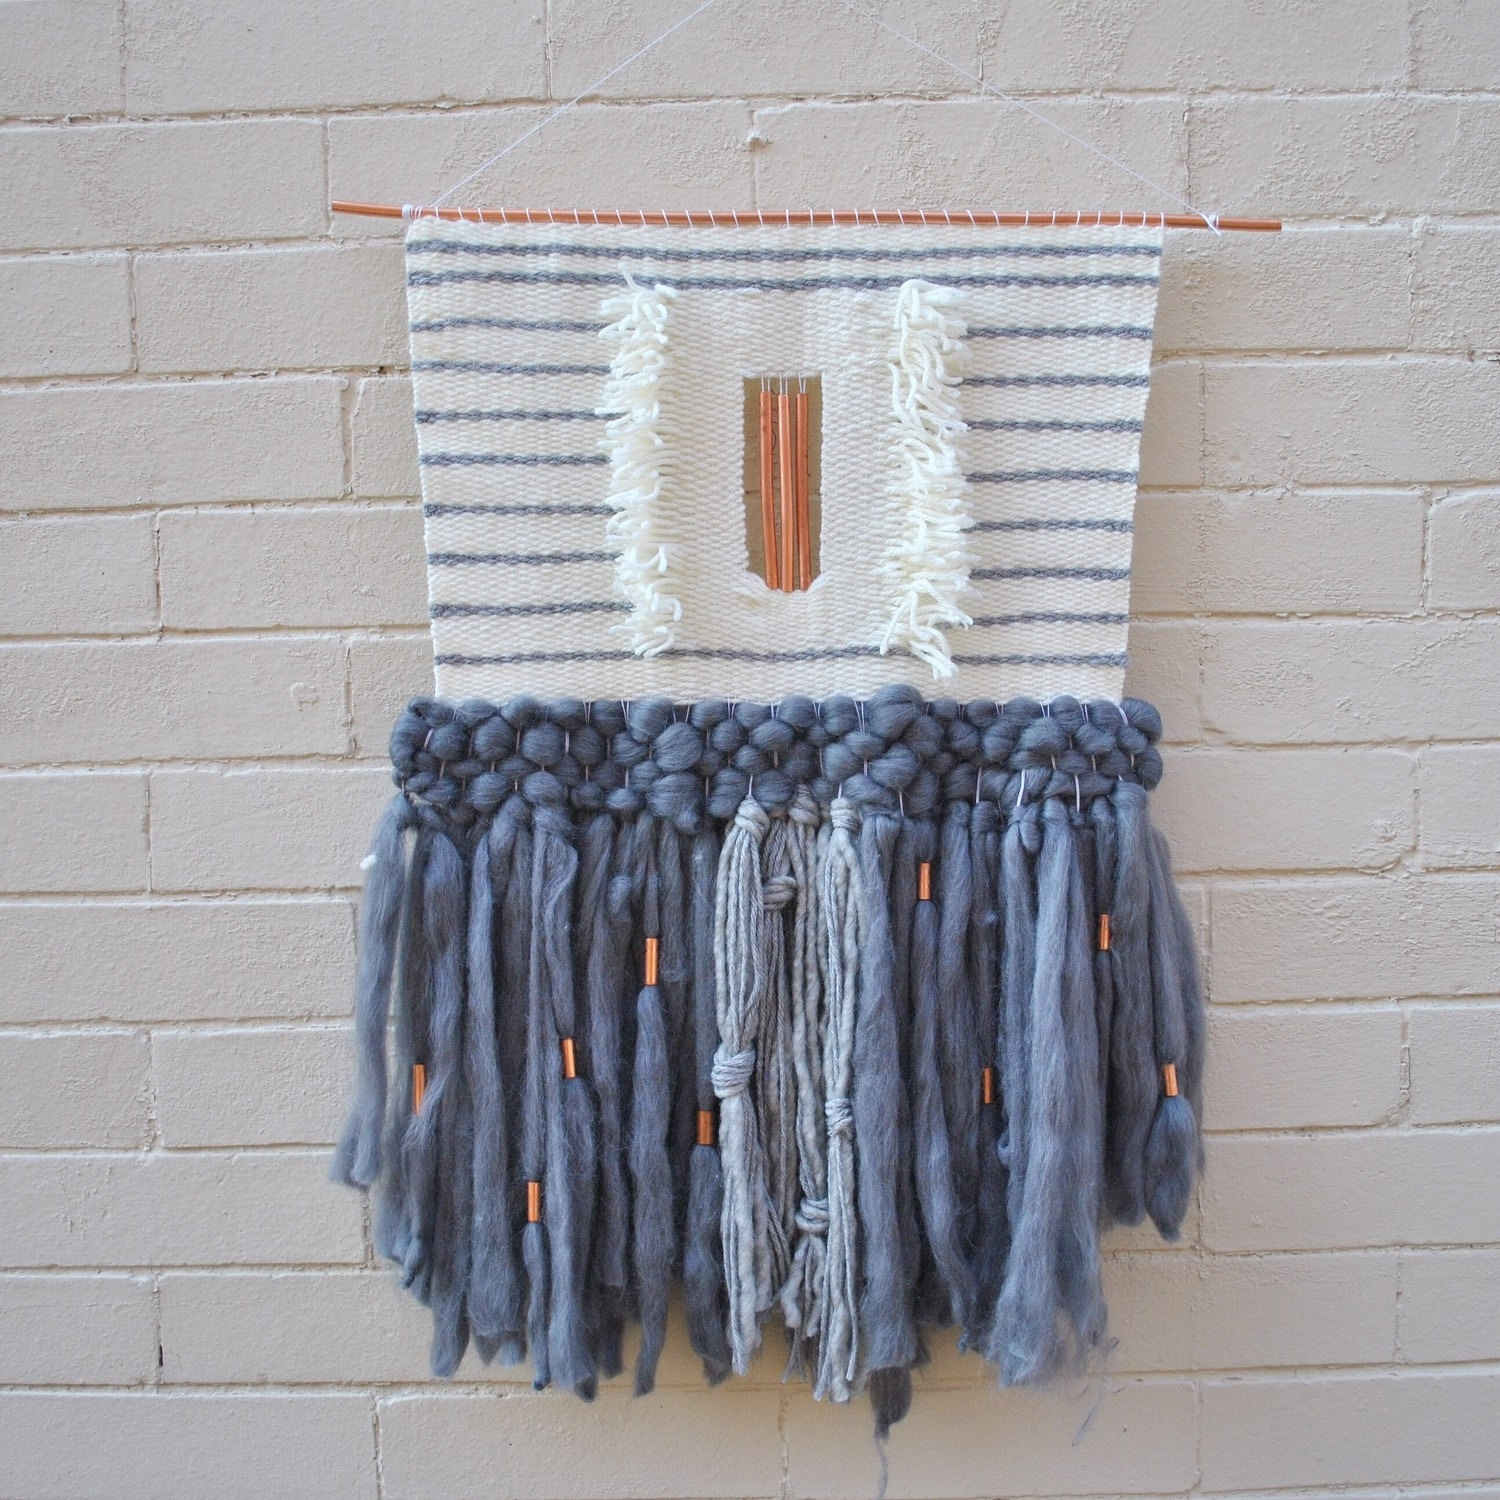 40 Bold And Modern Textile Wall Hangings | Panfan Site Intended For Most Recently Released Hanging Textile Wall Art (View 5 of 15)